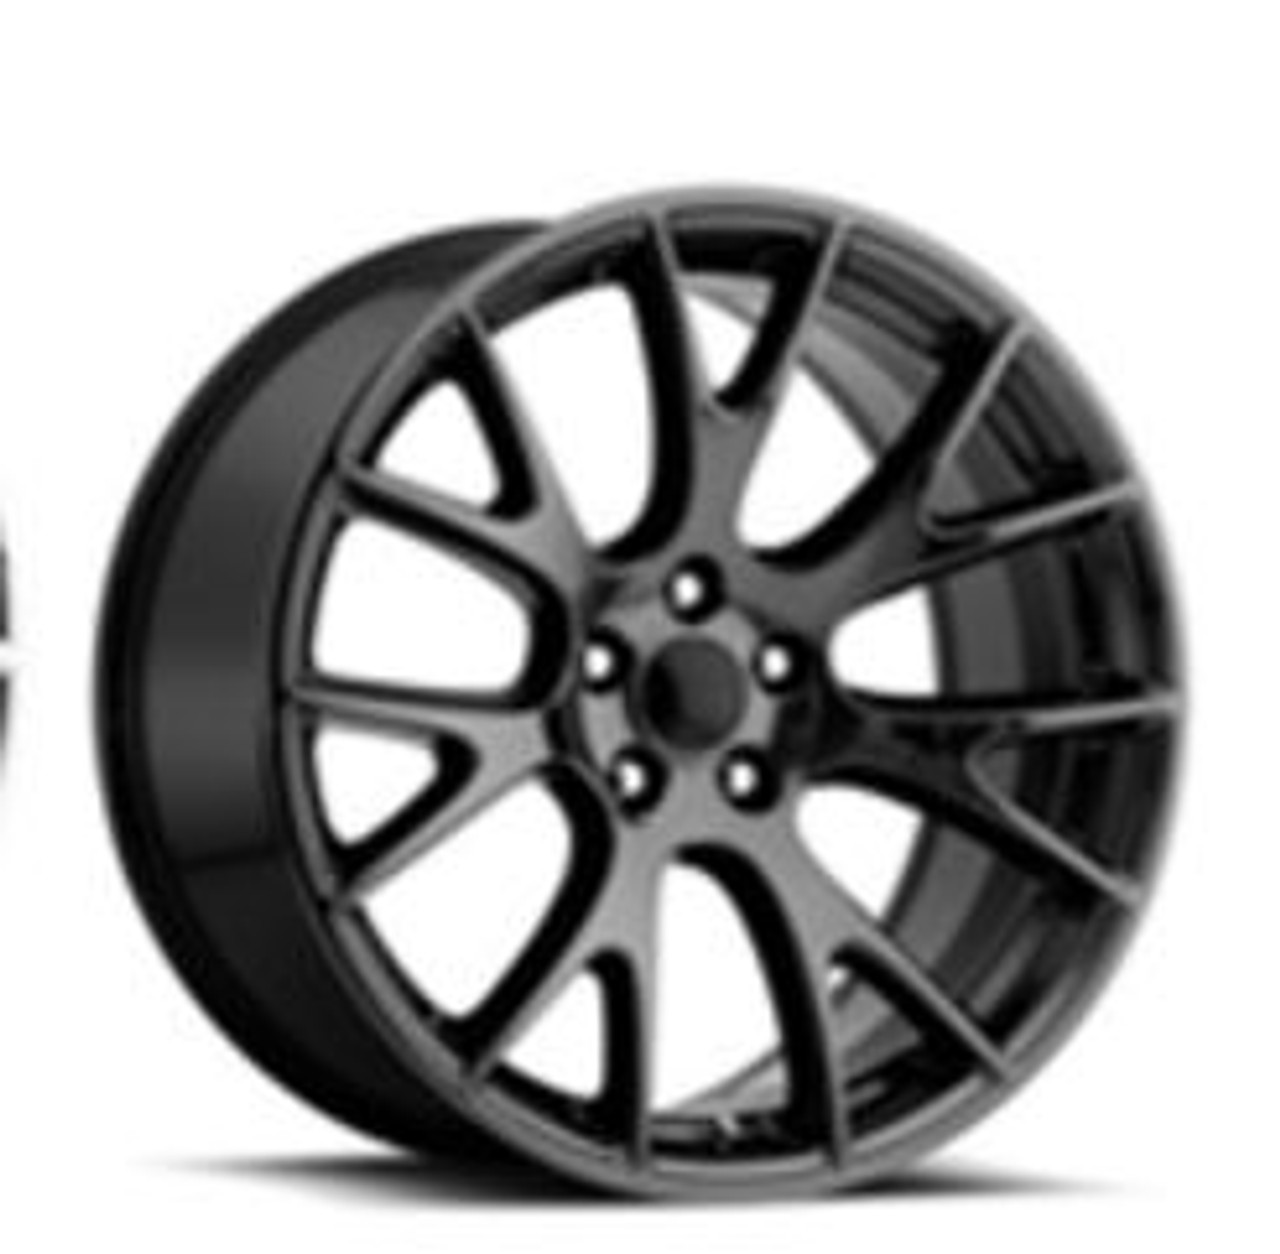 Hellcat Style 22 Wheels Pvd Black Chrome Dodge Challenger 300 Charger Magnum Staggered Set Of 22x9 10 Rims Stock Wheel Solutions